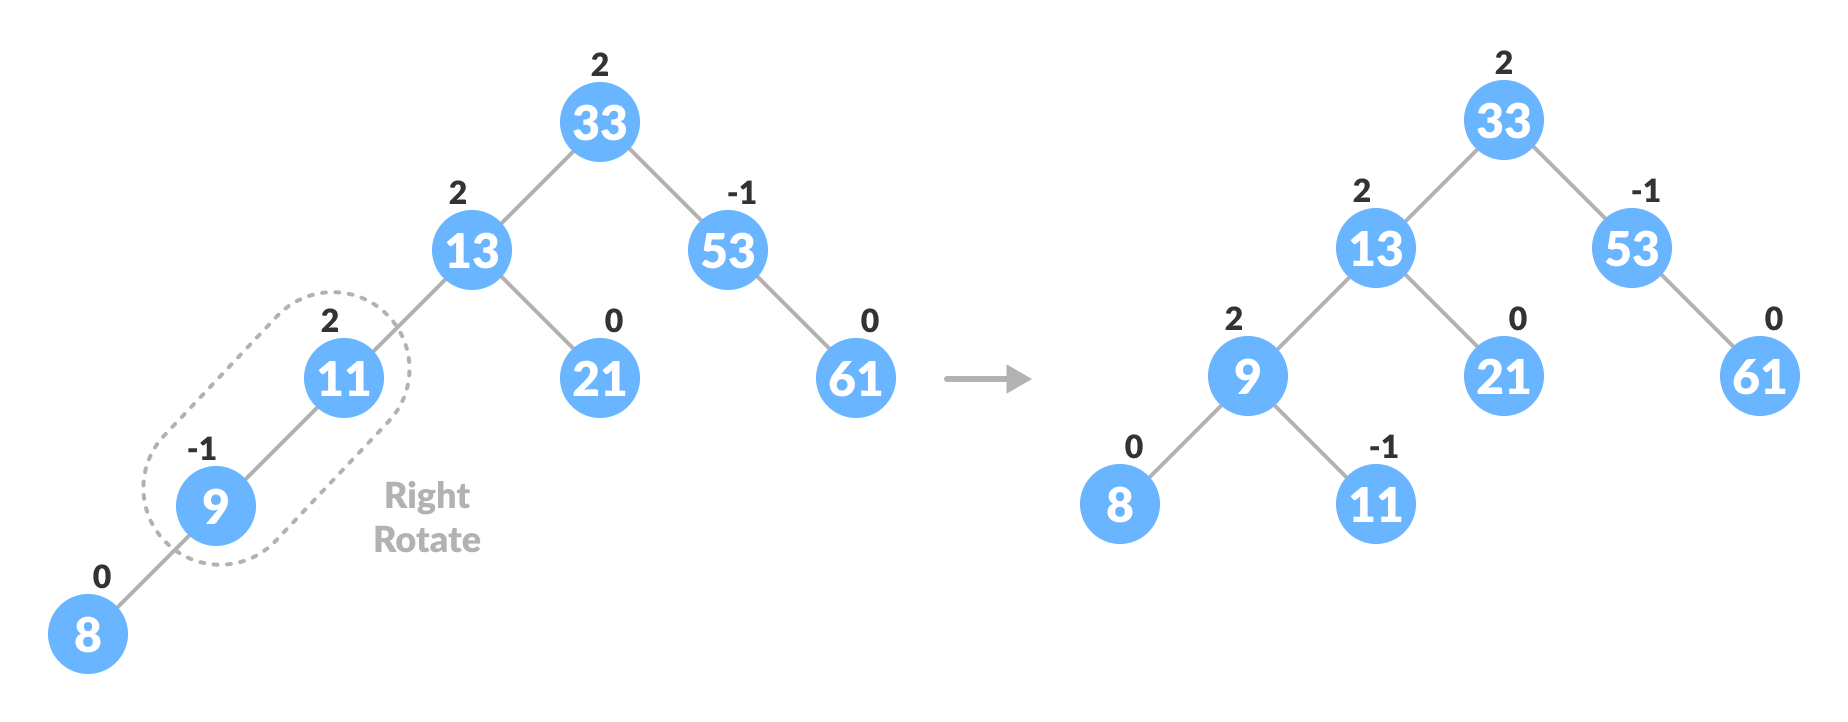 insertion in avl tree